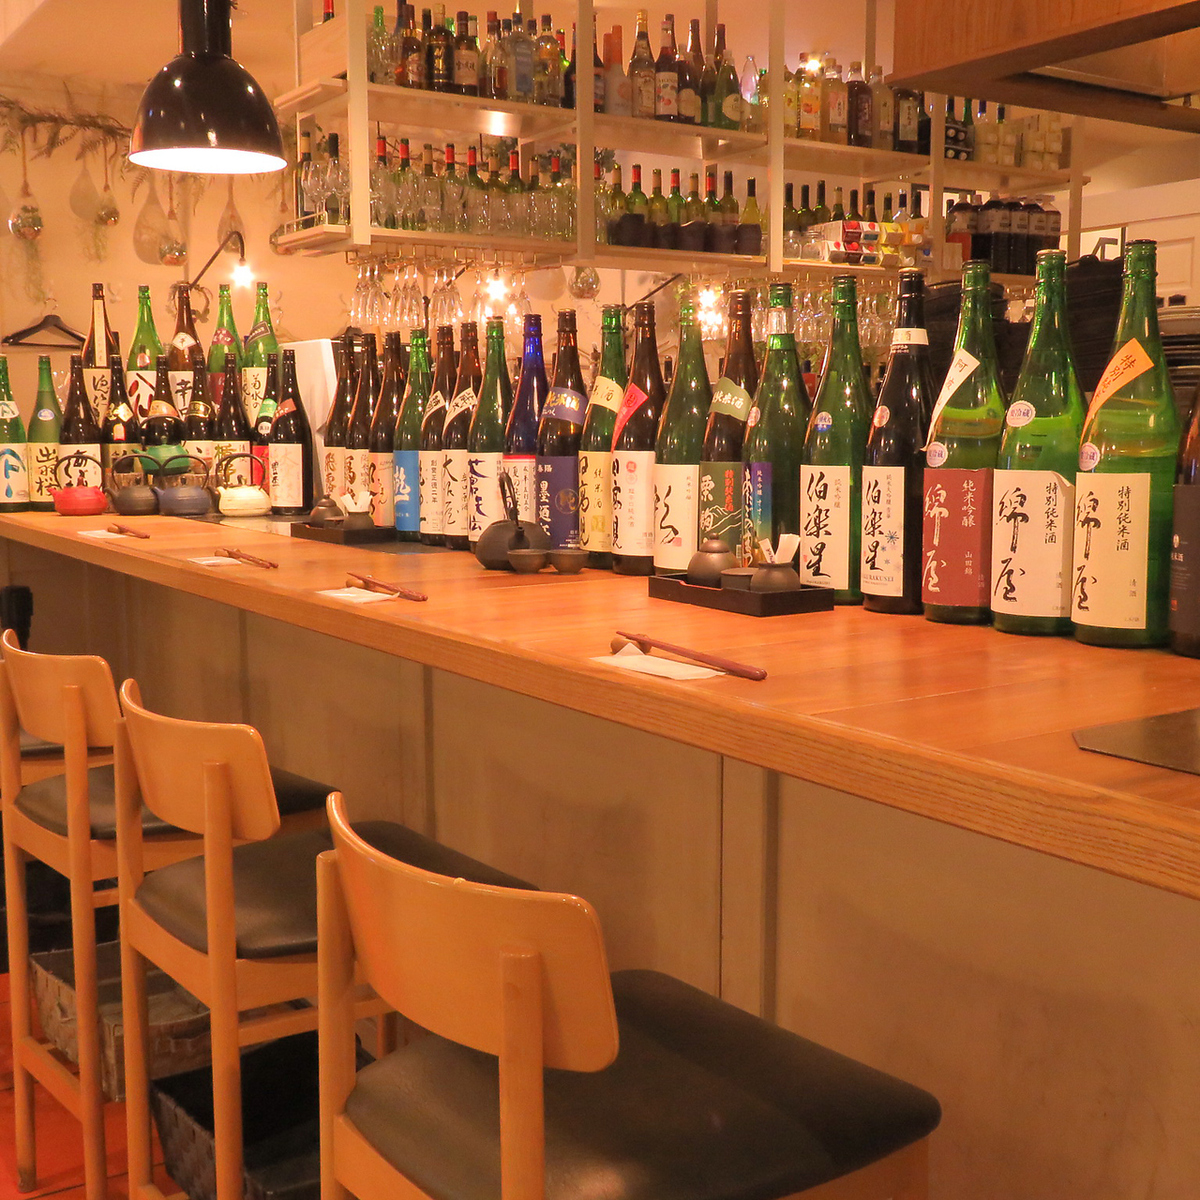 """【Counter seat where one person can enjoy it】 GocchoSun (Petch girl) of PARCO 2 also has counter seats that one person can enjoy it! Seasonal seasonal ingredients used, Japanese and Western cuisine Would you like to have a cup of light at the end of the work at our shop that pleasures you? Because """"brand sake"""" that fits the delicious dish changes monthly brands will change, so please look forward to it!"""